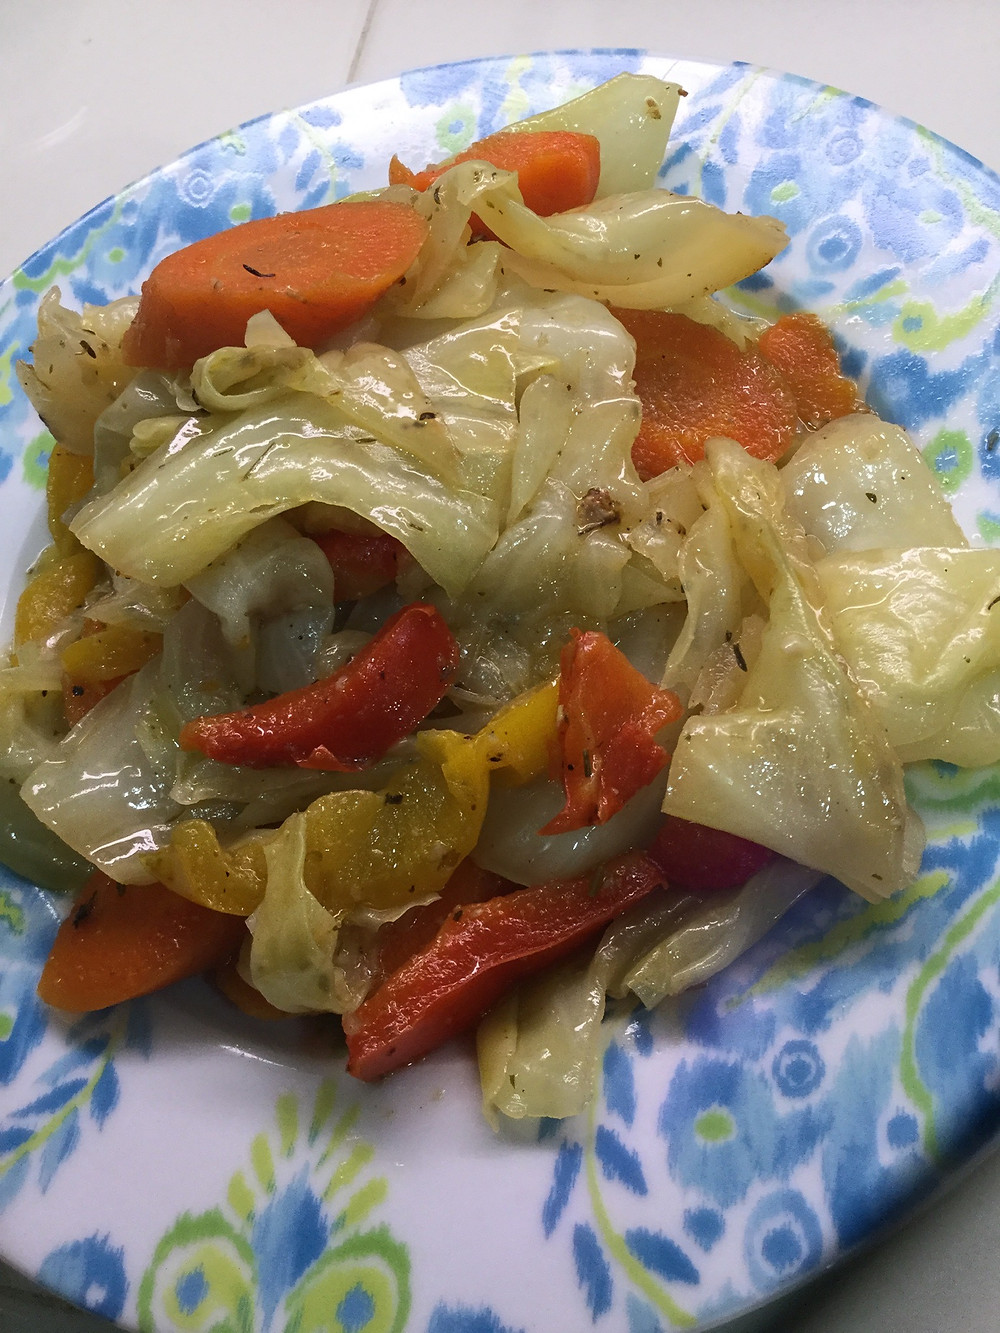 Cabbage seasoned with oregano, carrots, red and yellow peppers.